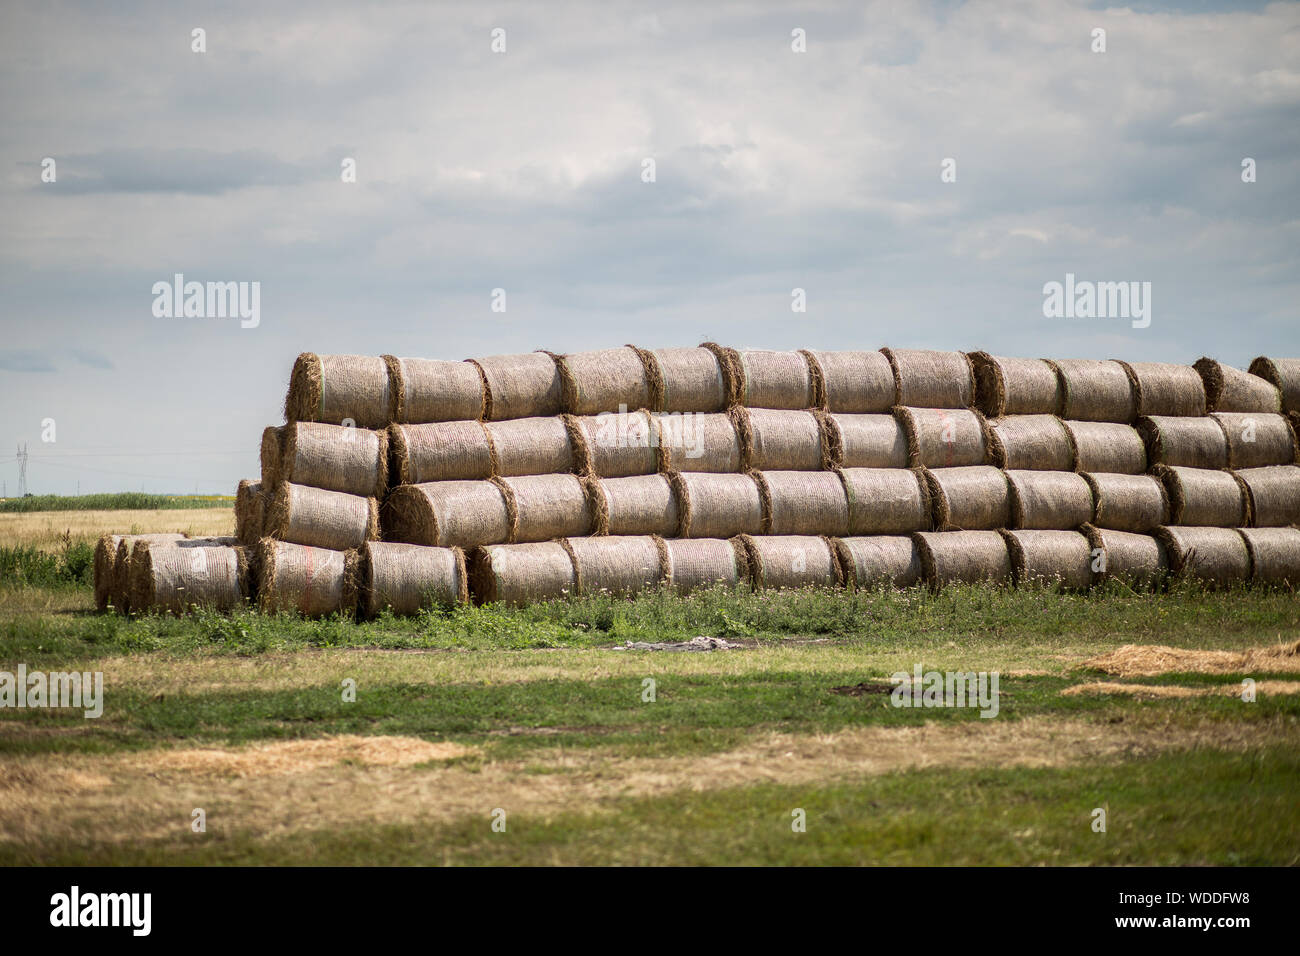 Stacked Hay Bales With Coverings On Field Against Cloudy Sky Stock Photo